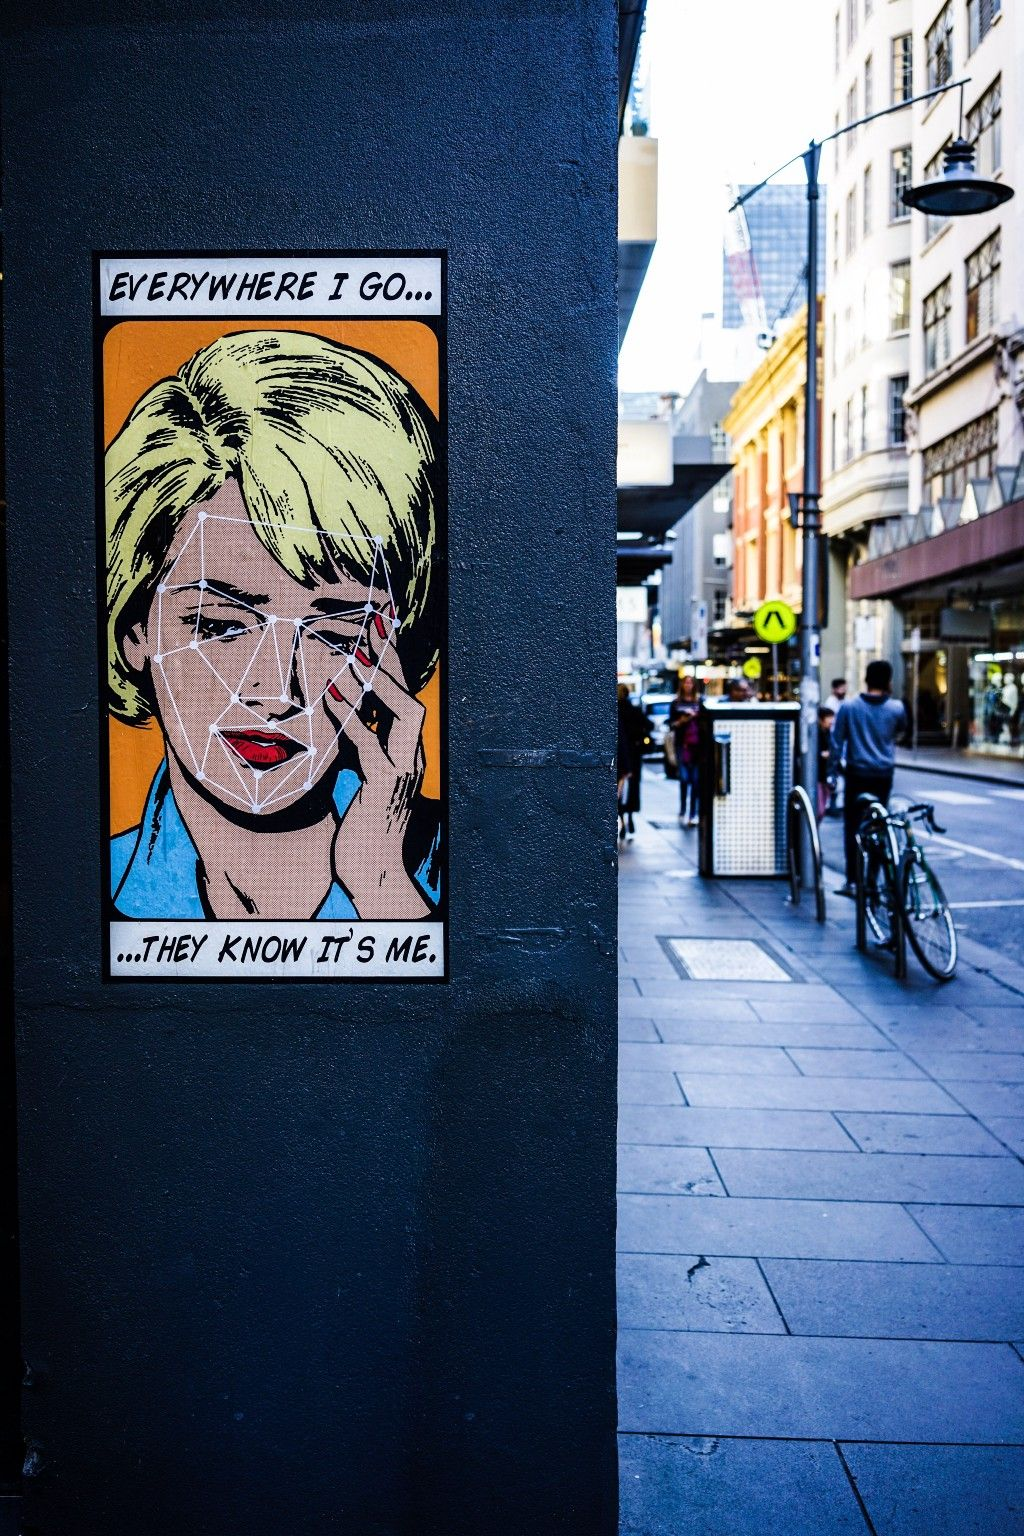 Free Speech Costly Consequences Graffiti images, Free